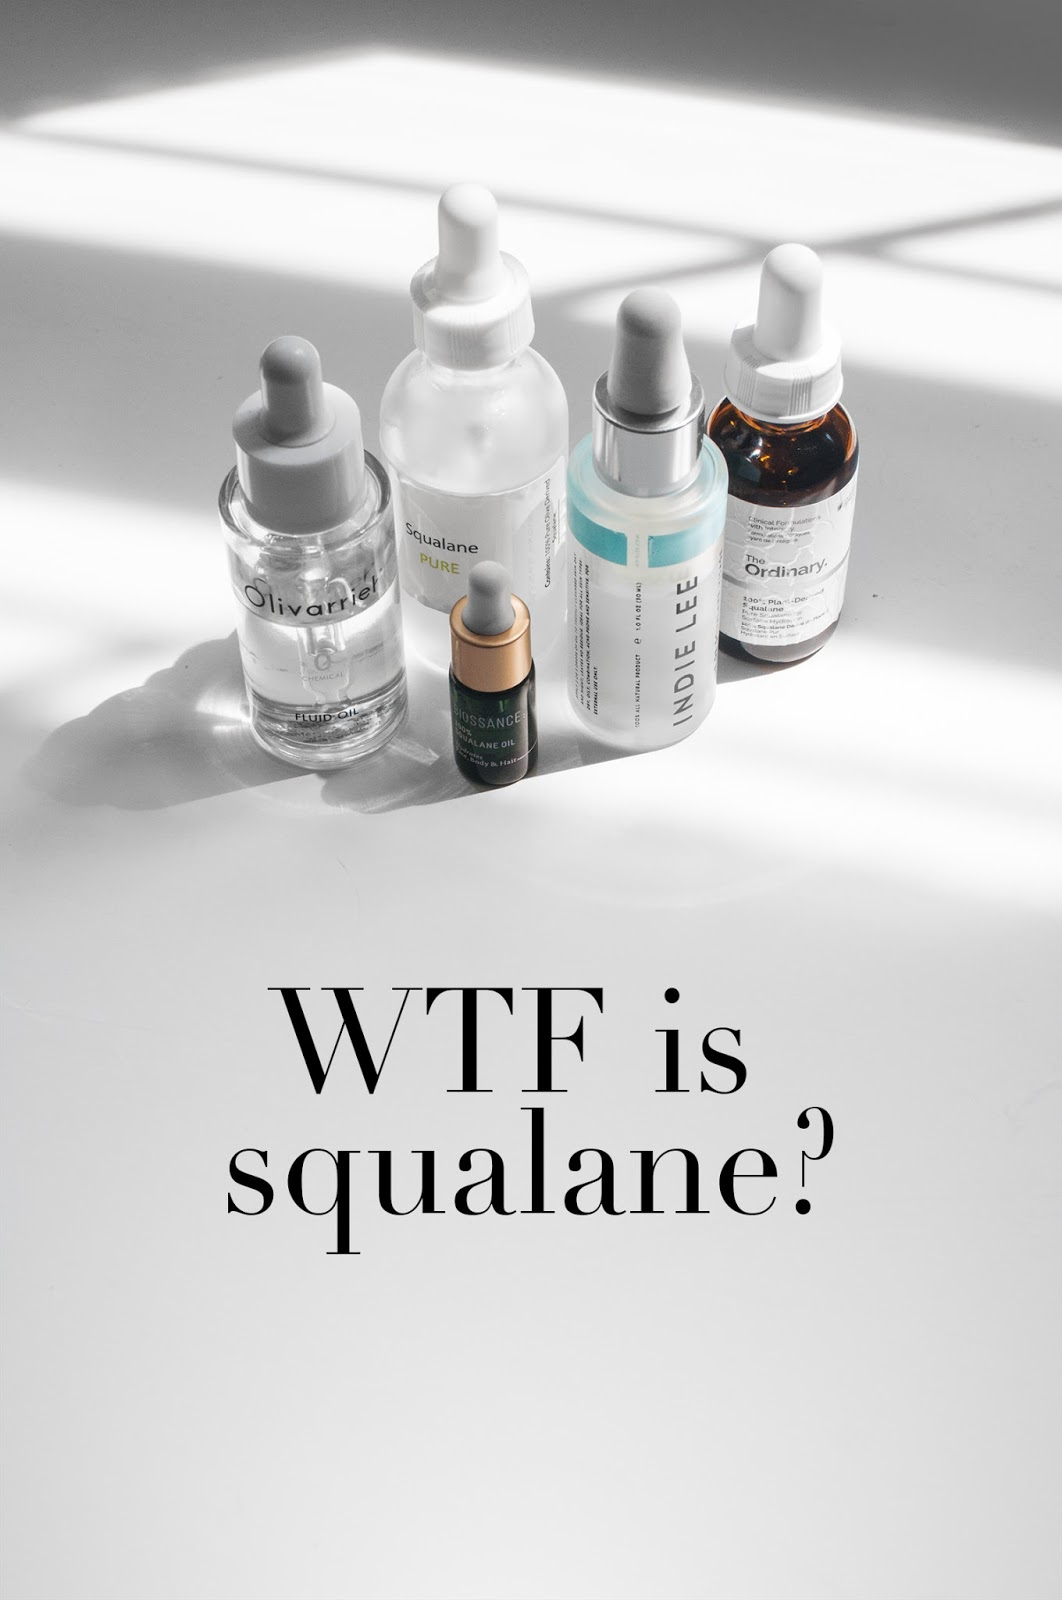 what is squalane, squalane skincare benefits, indie lee squalane, biossance squalane, olivarrier squalane, the ordinary squalane, affordable squalane, squalane reviews, squalane skincare benefits, squalane oil reviews